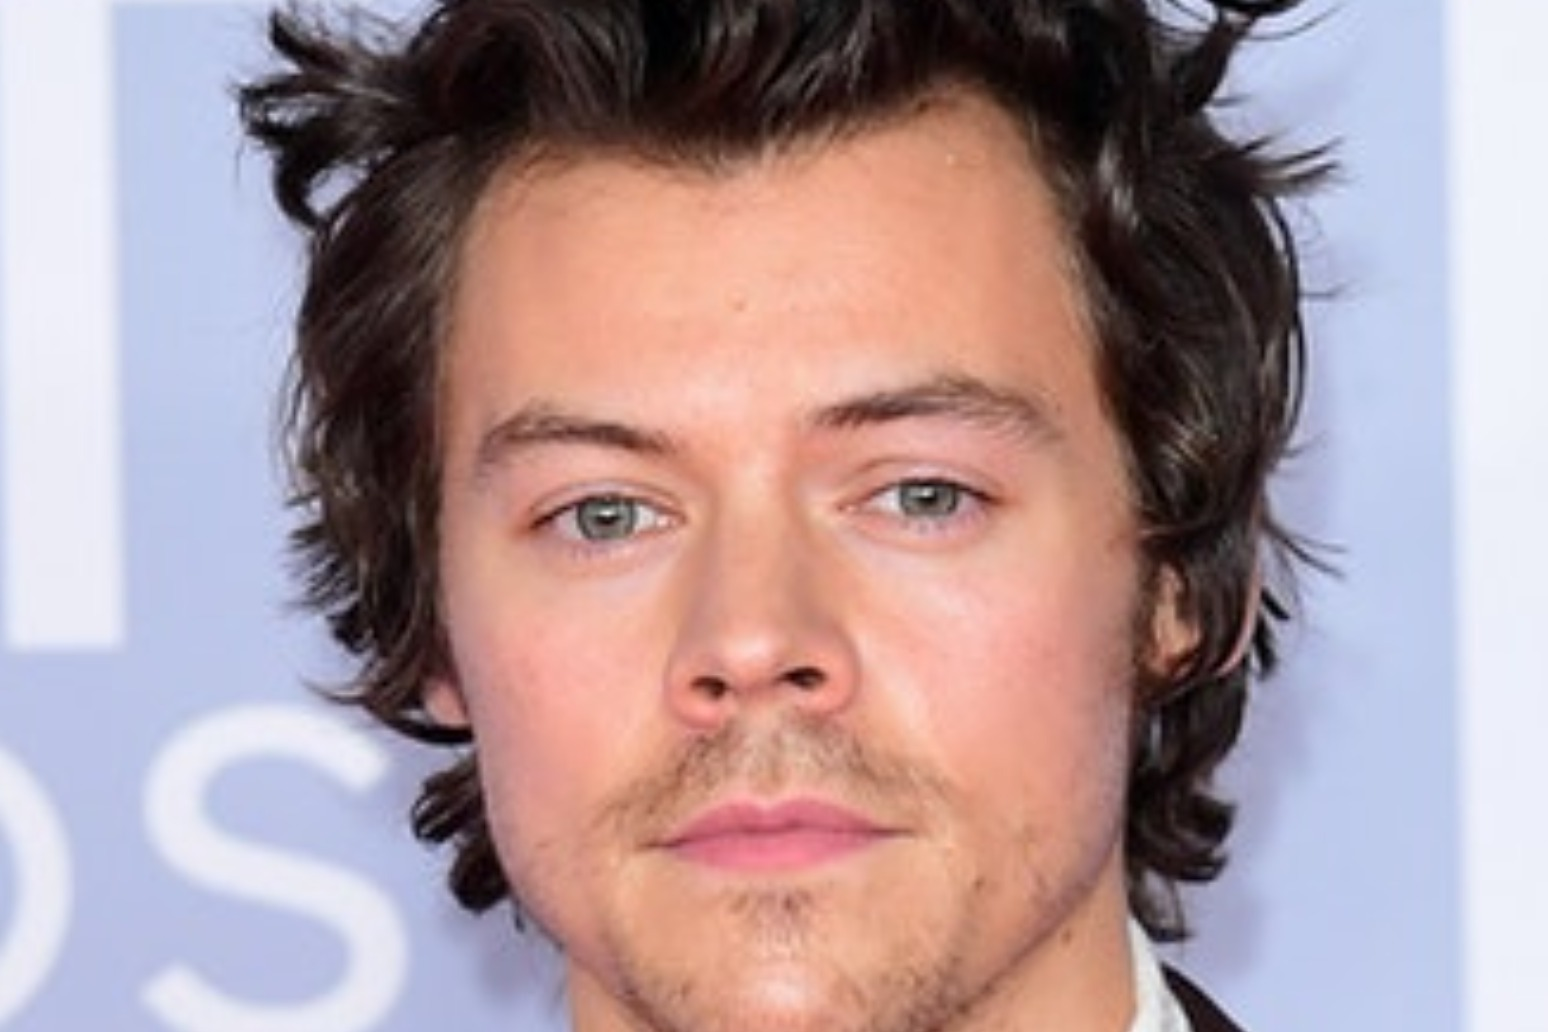 Harry Styles endorses candidate in US election race